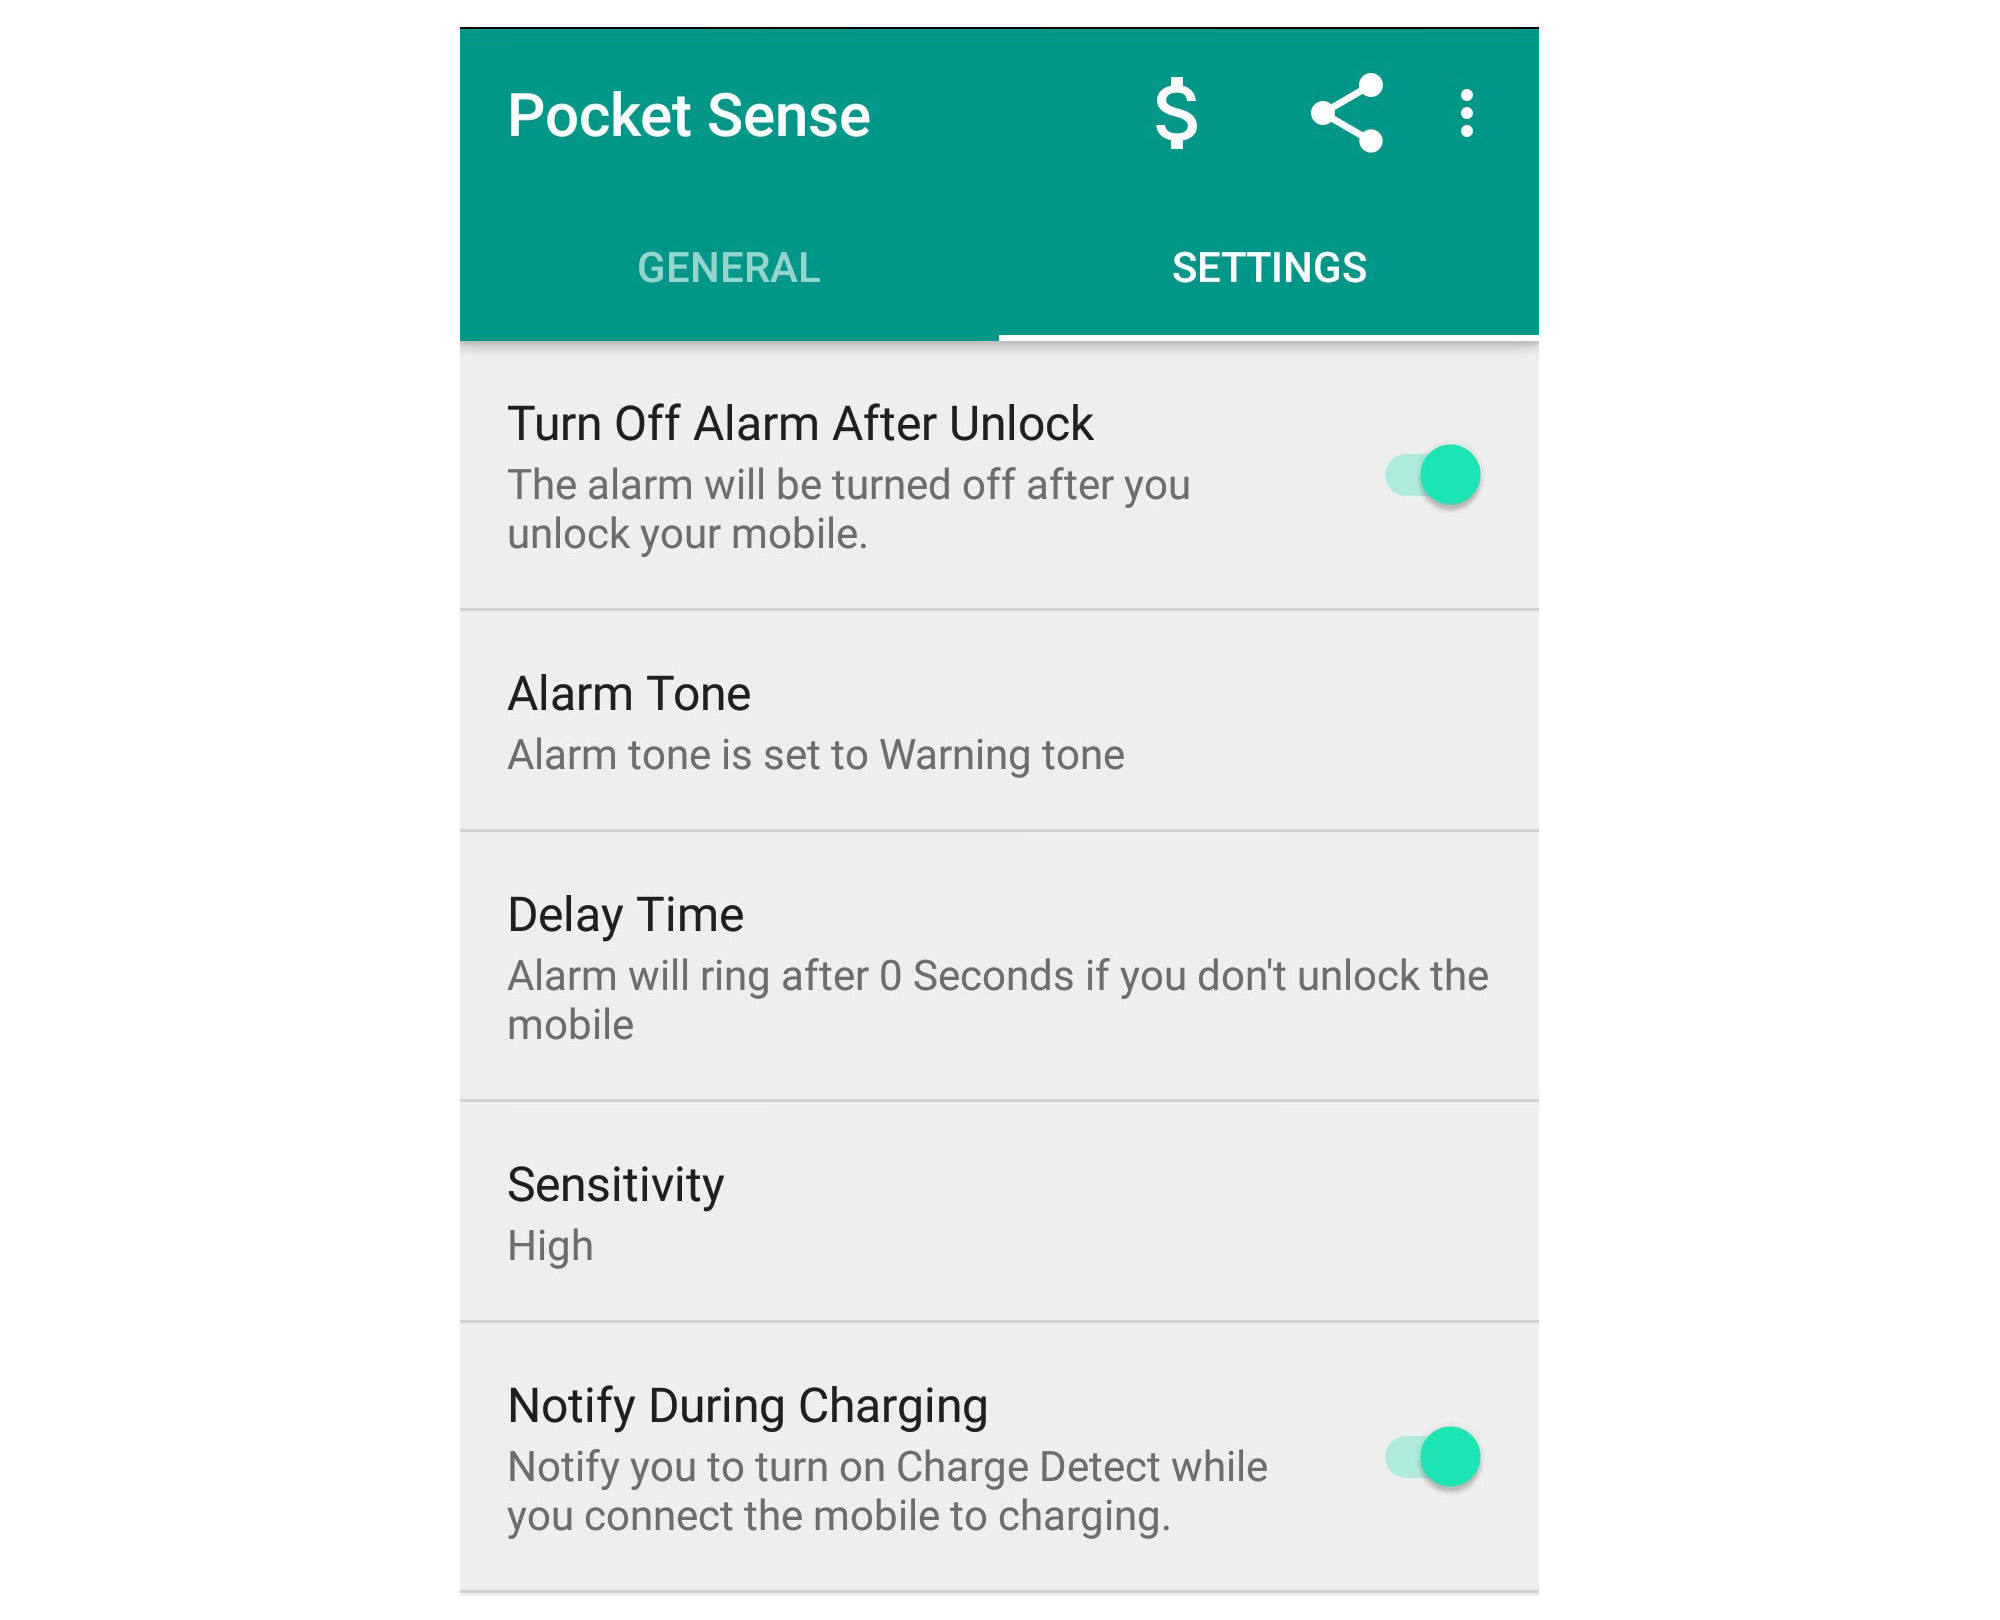 pocket sense alarm